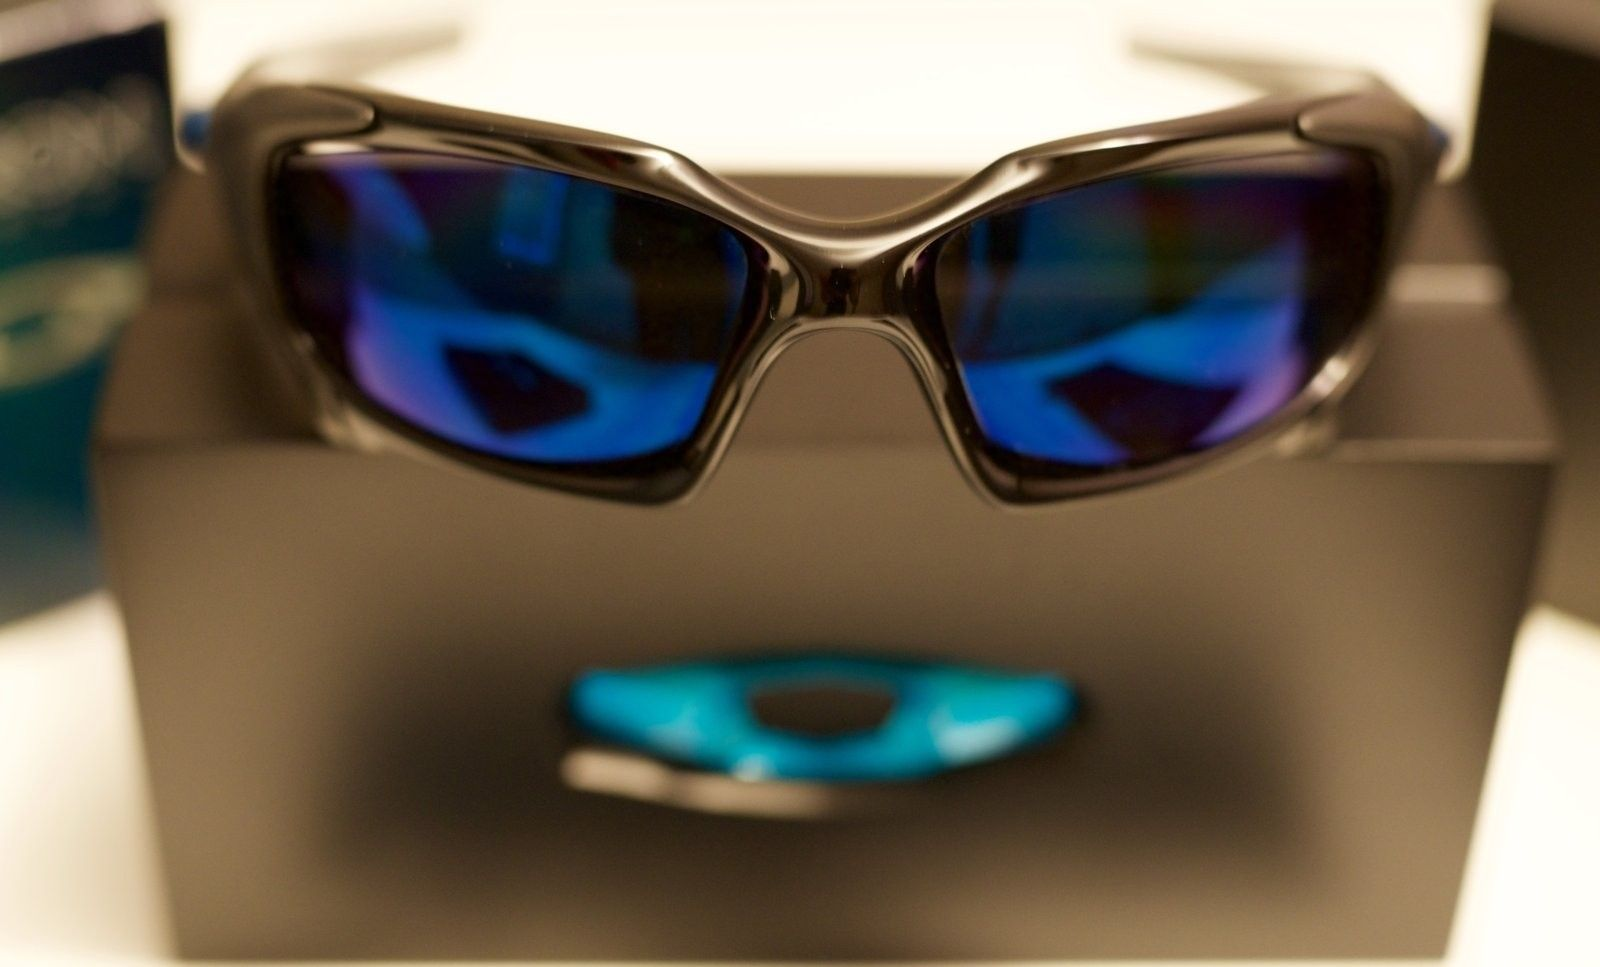 Tron PB1 + Ice Iridium polarized lenses - DSC_0230.jpg